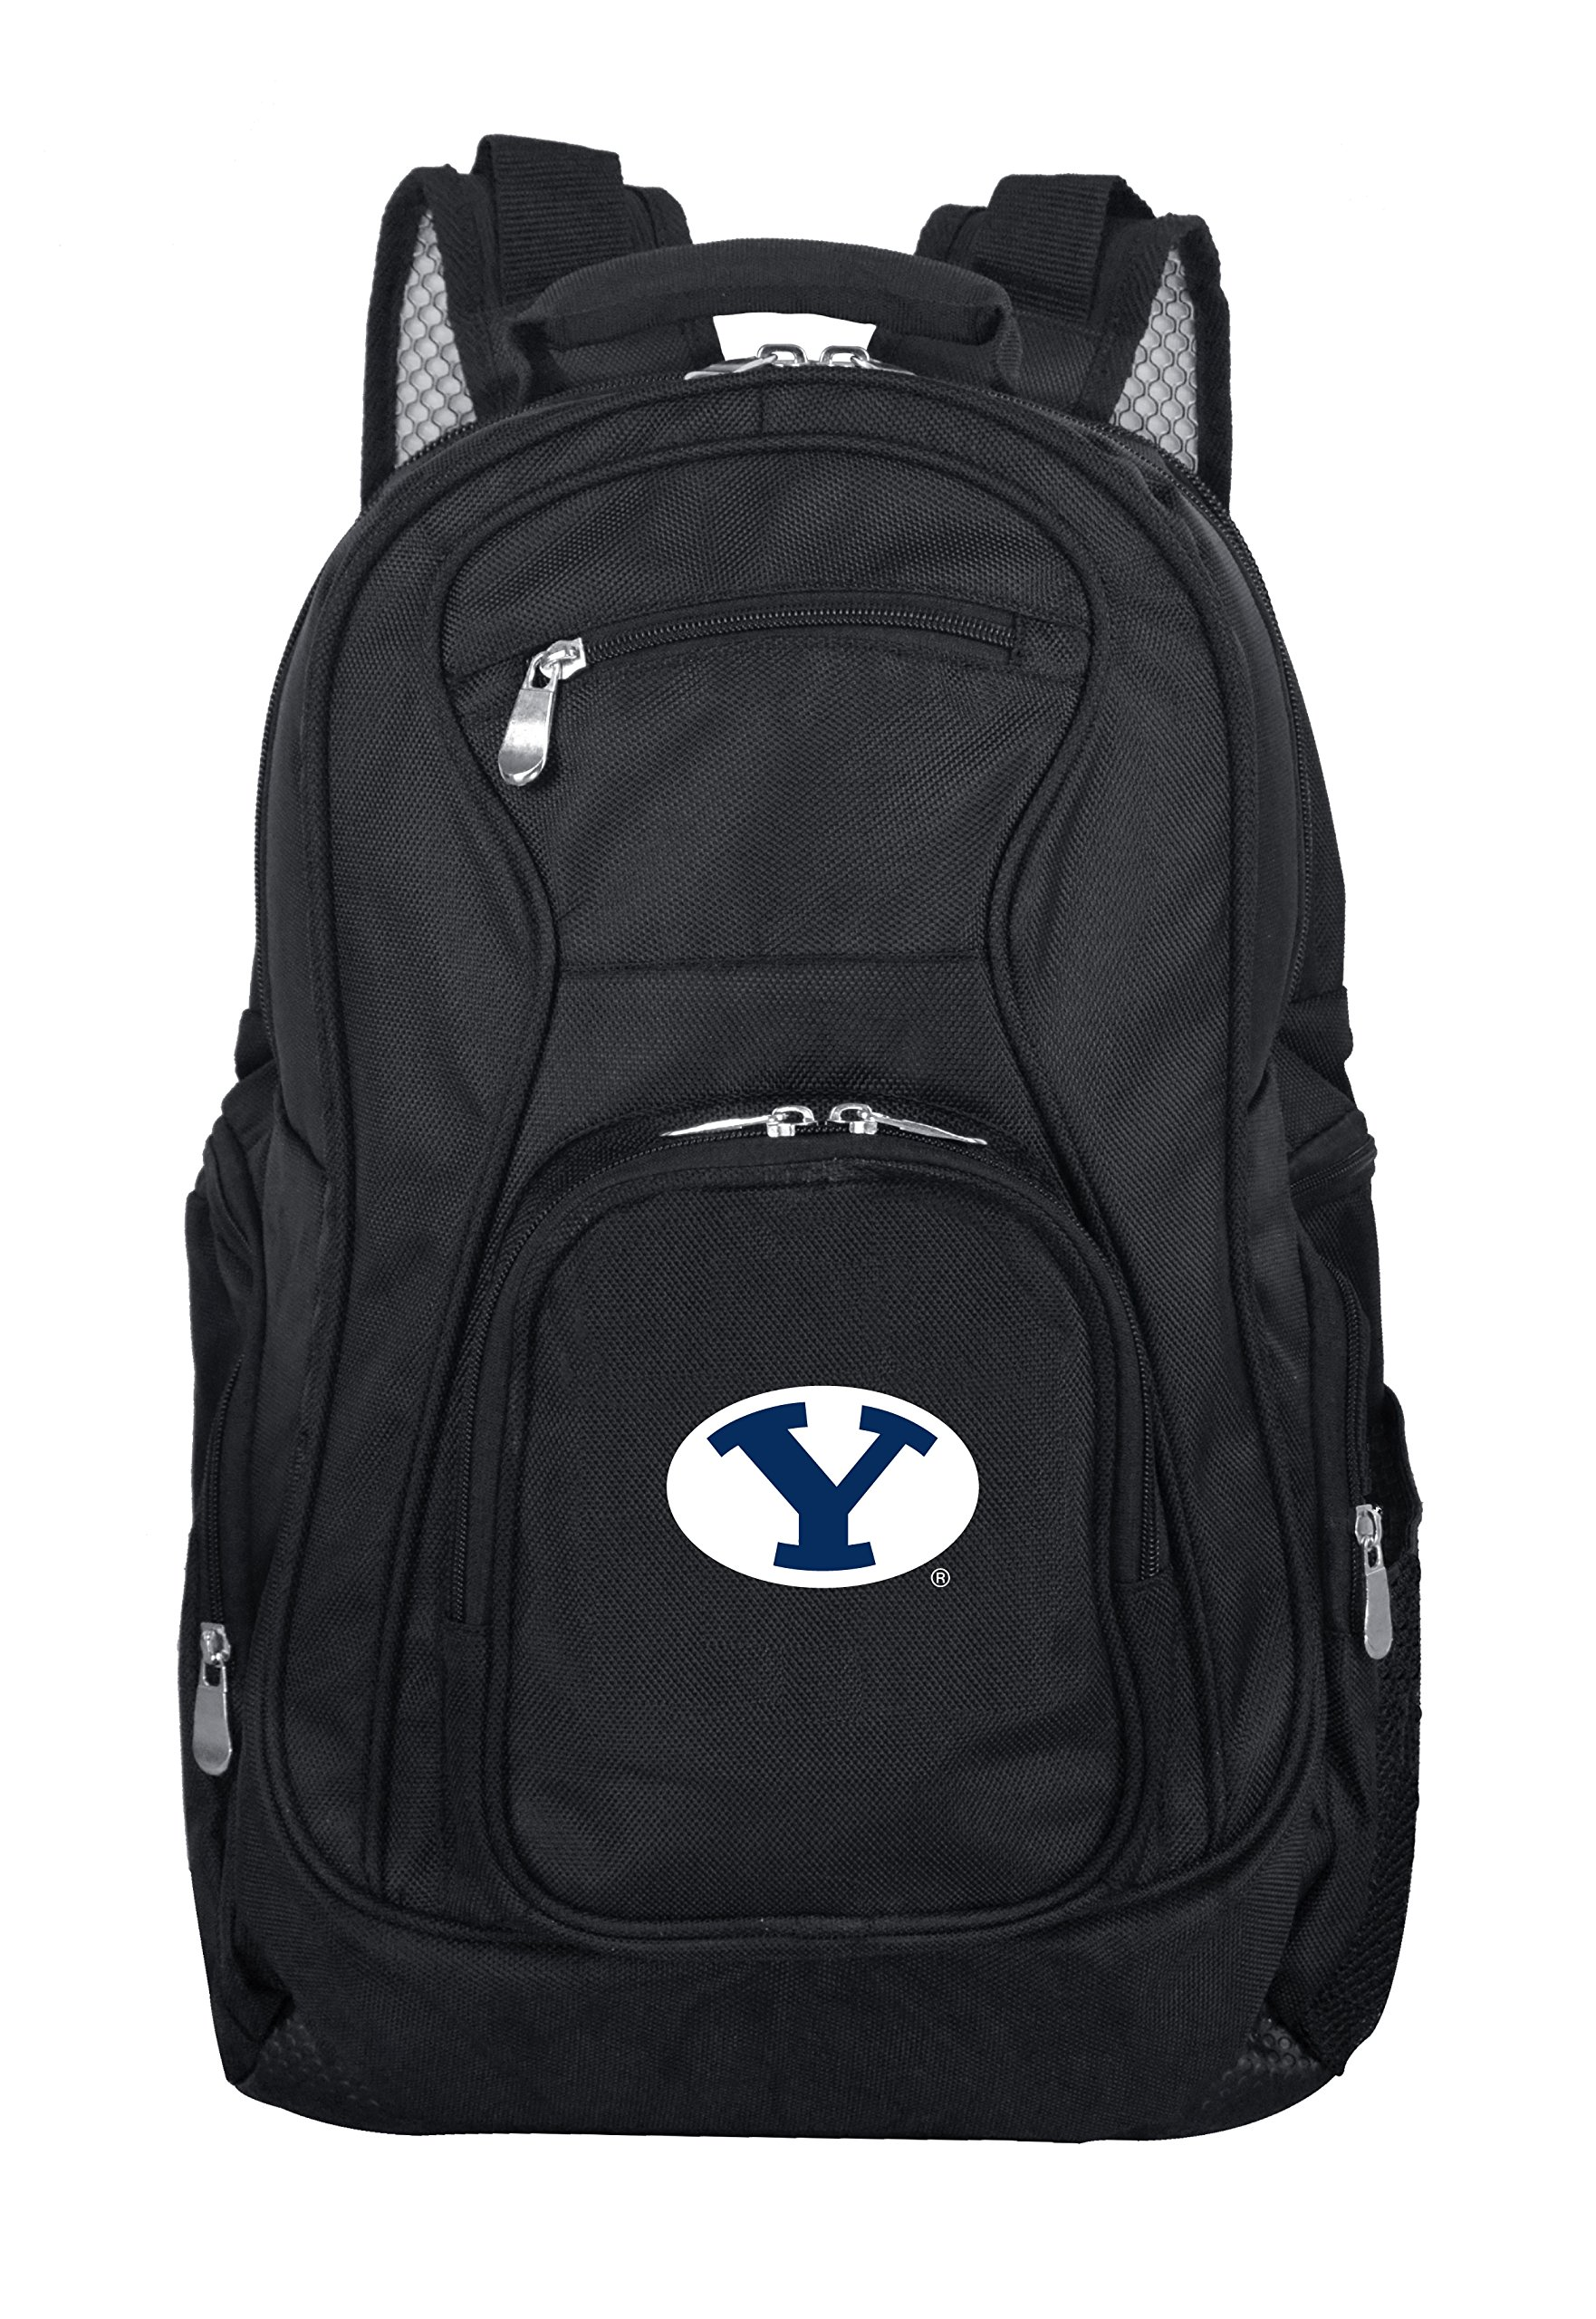 Denco NCAA BYU Cougars Voyager Laptop Backpack, 19-inches, Black